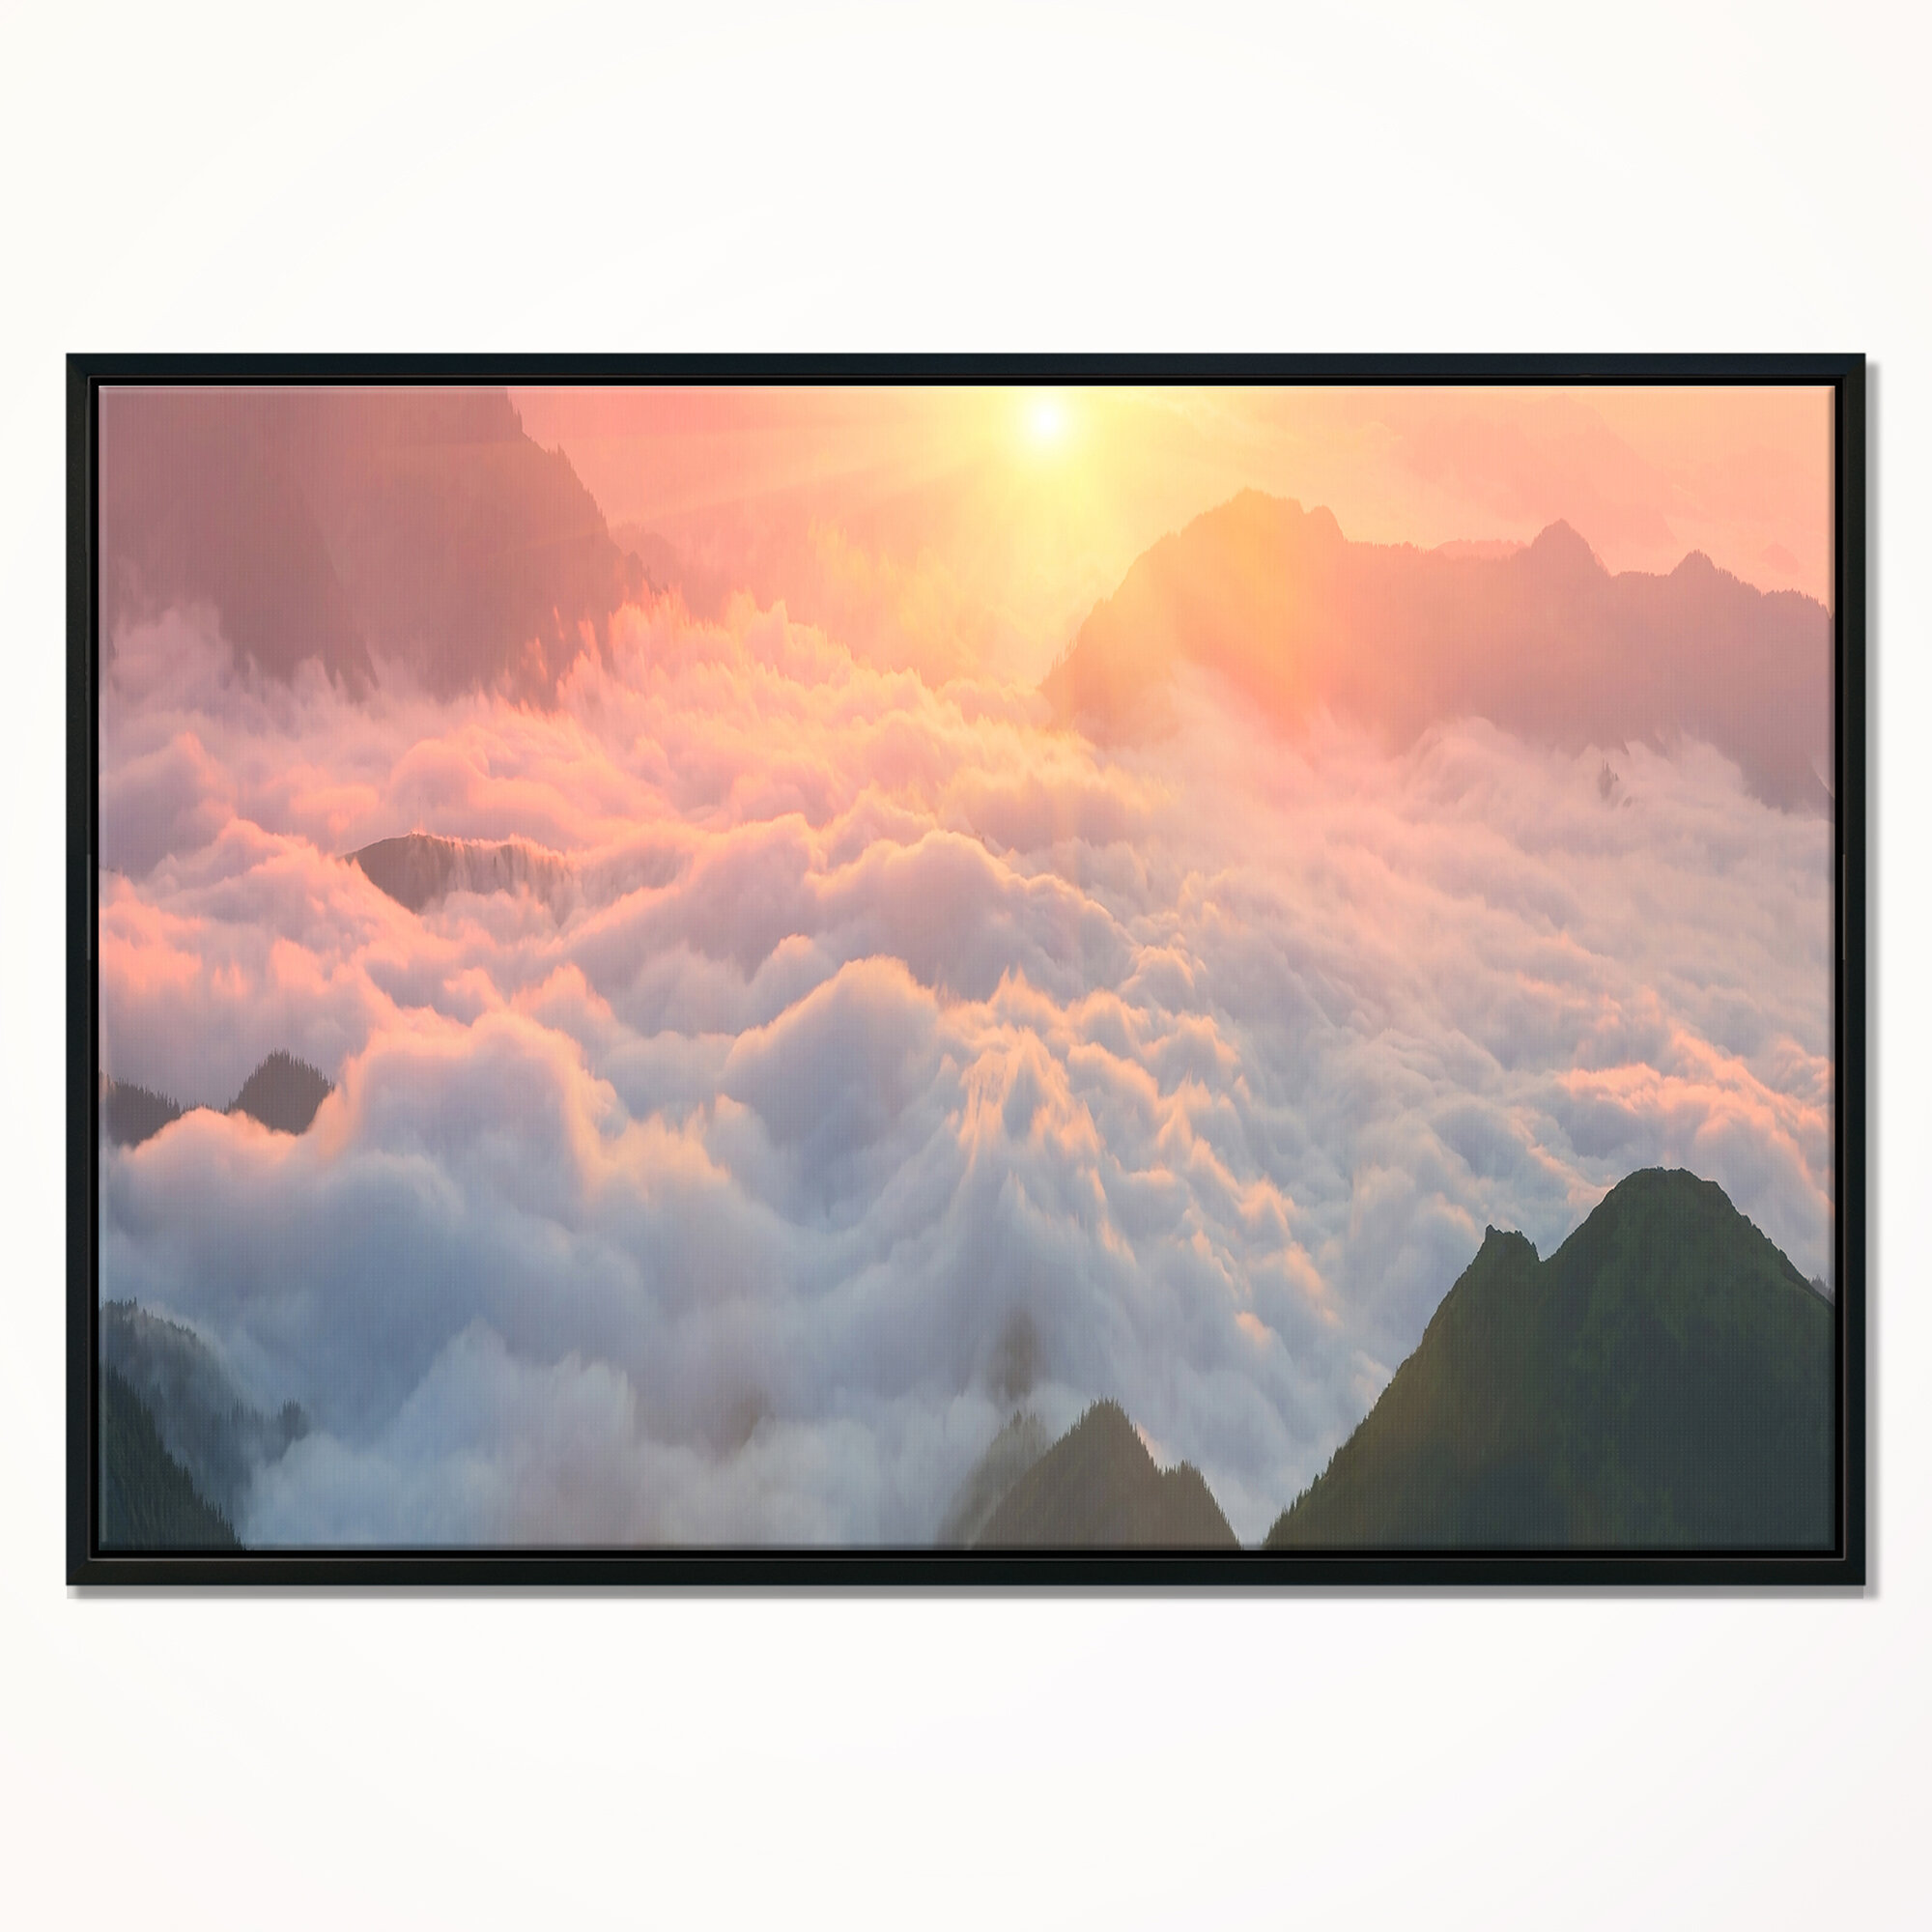 East Urban Home Heavy Fog In Mountains Panorama Framed Photographic Print On Wrapped Canvas Wayfair